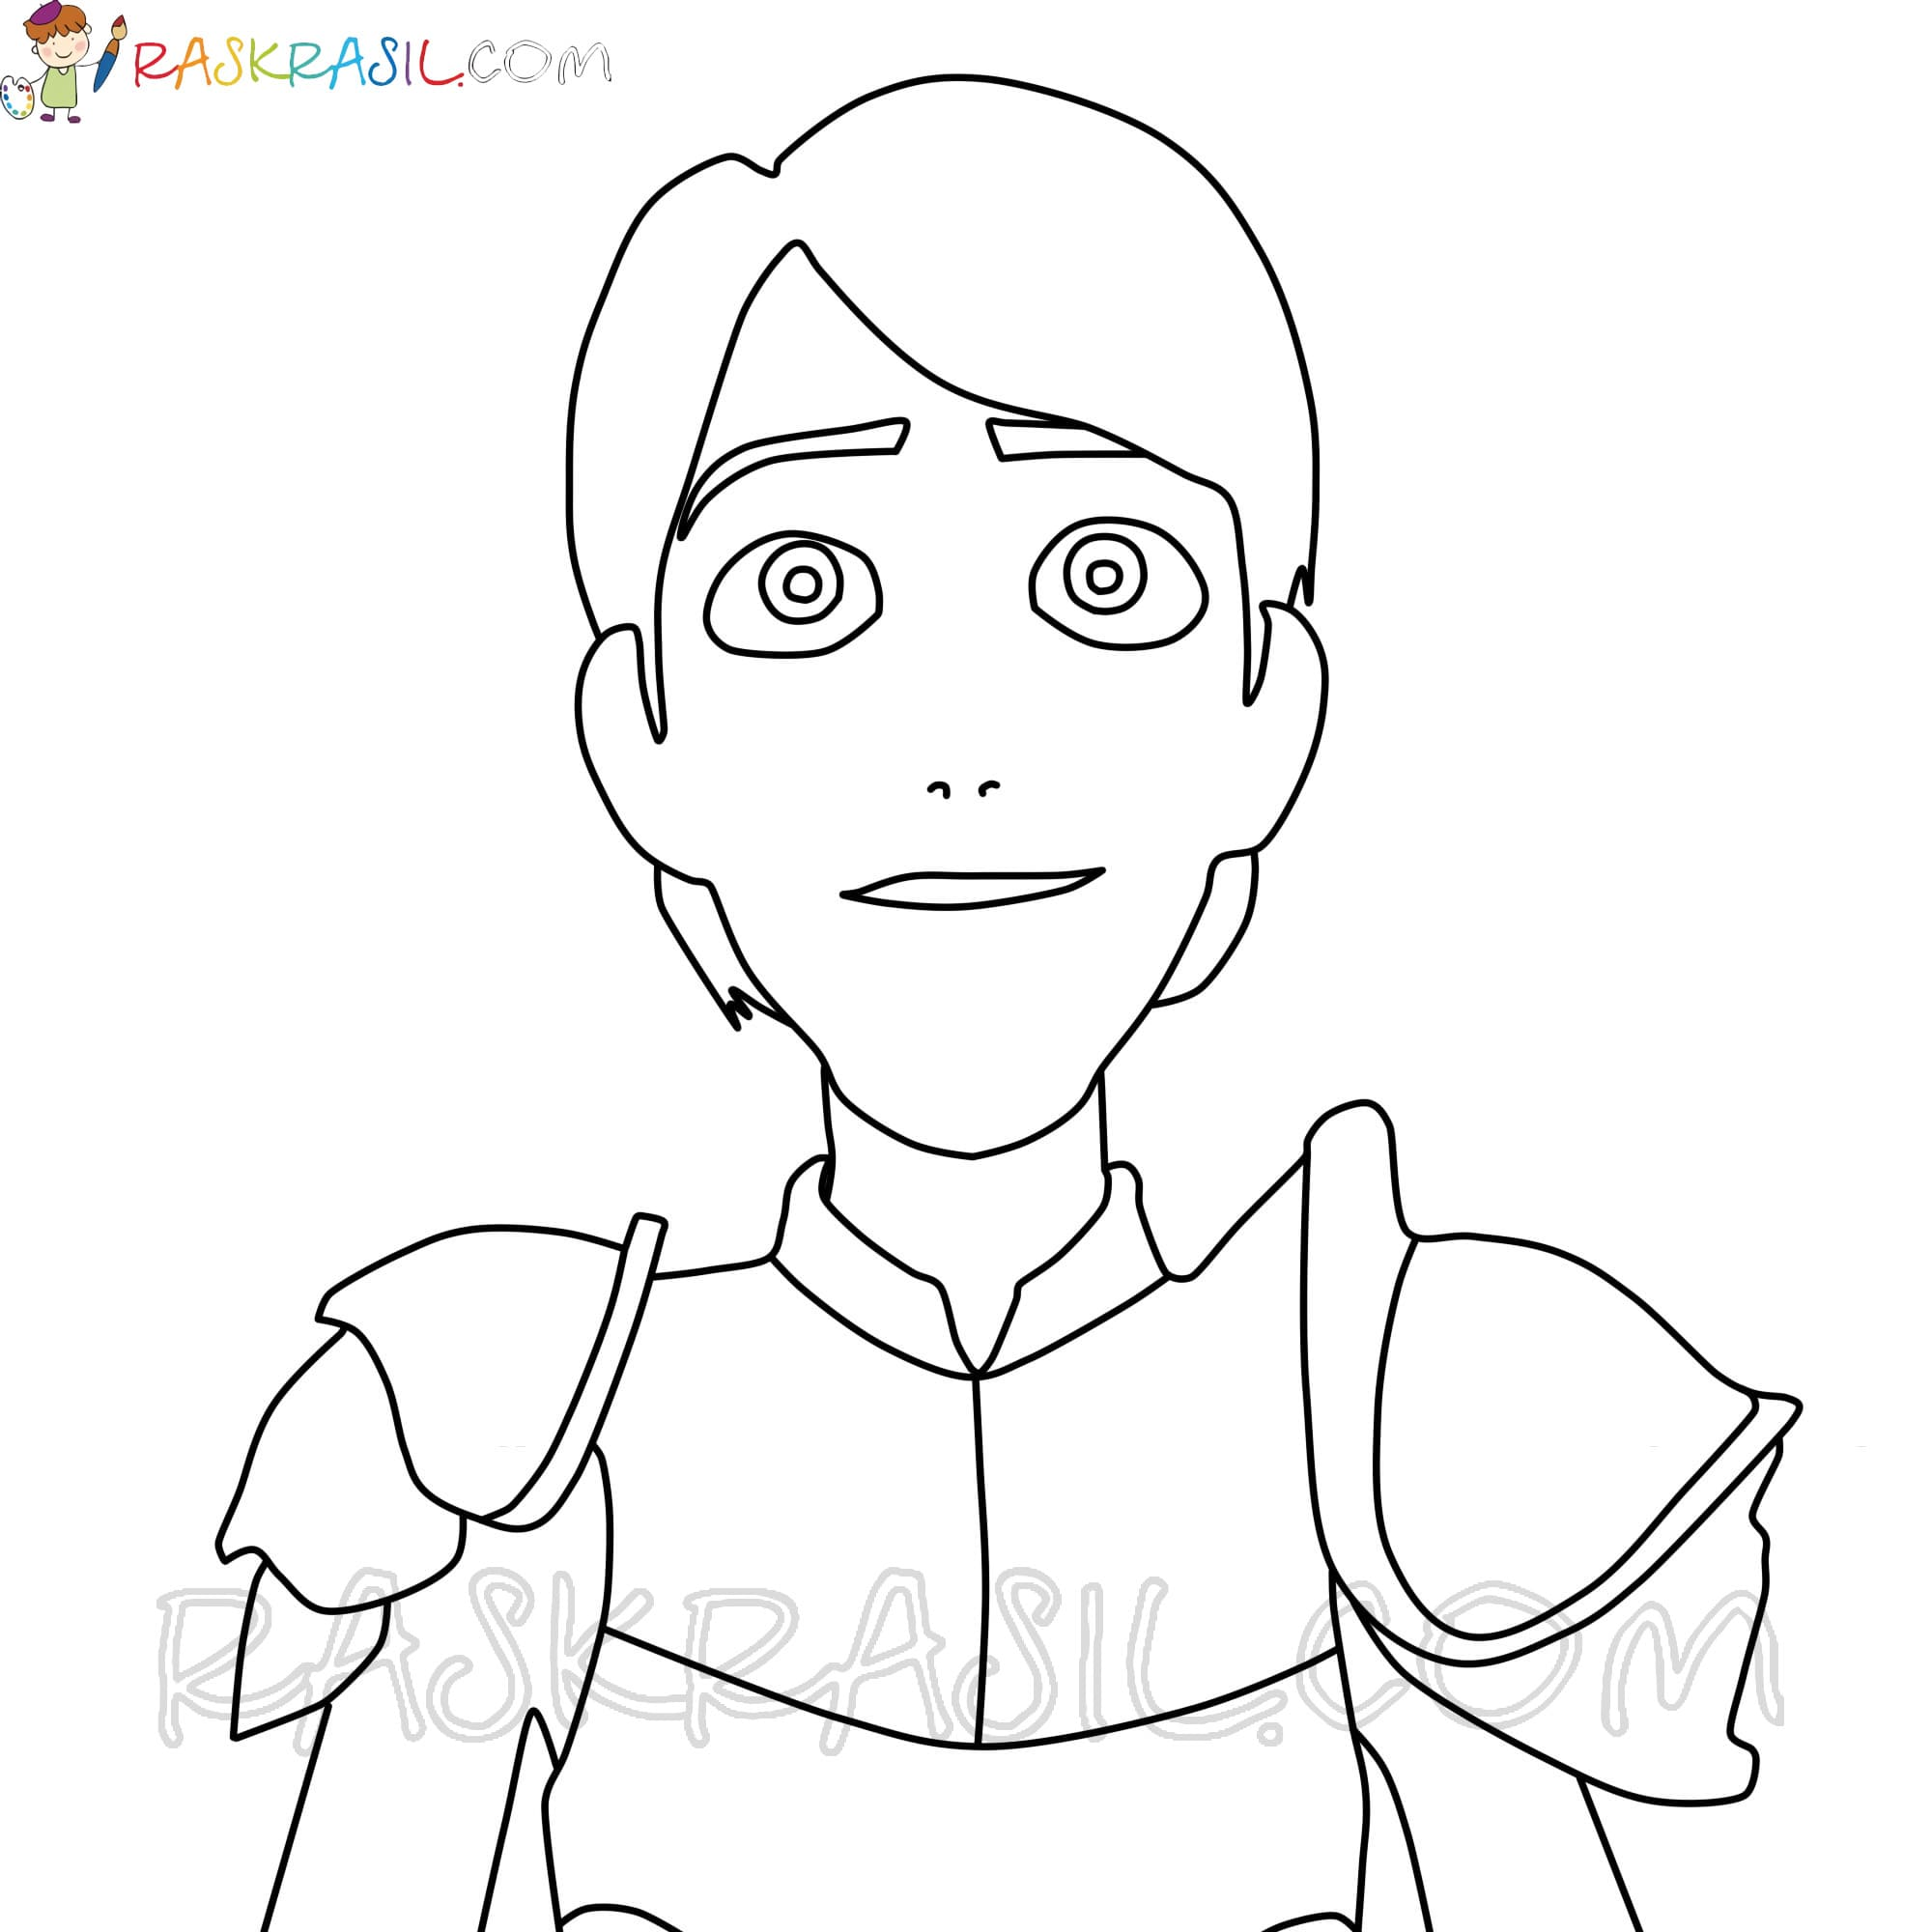 Trollhunters Coloring Pages. 32 Unique Images. Free Printable